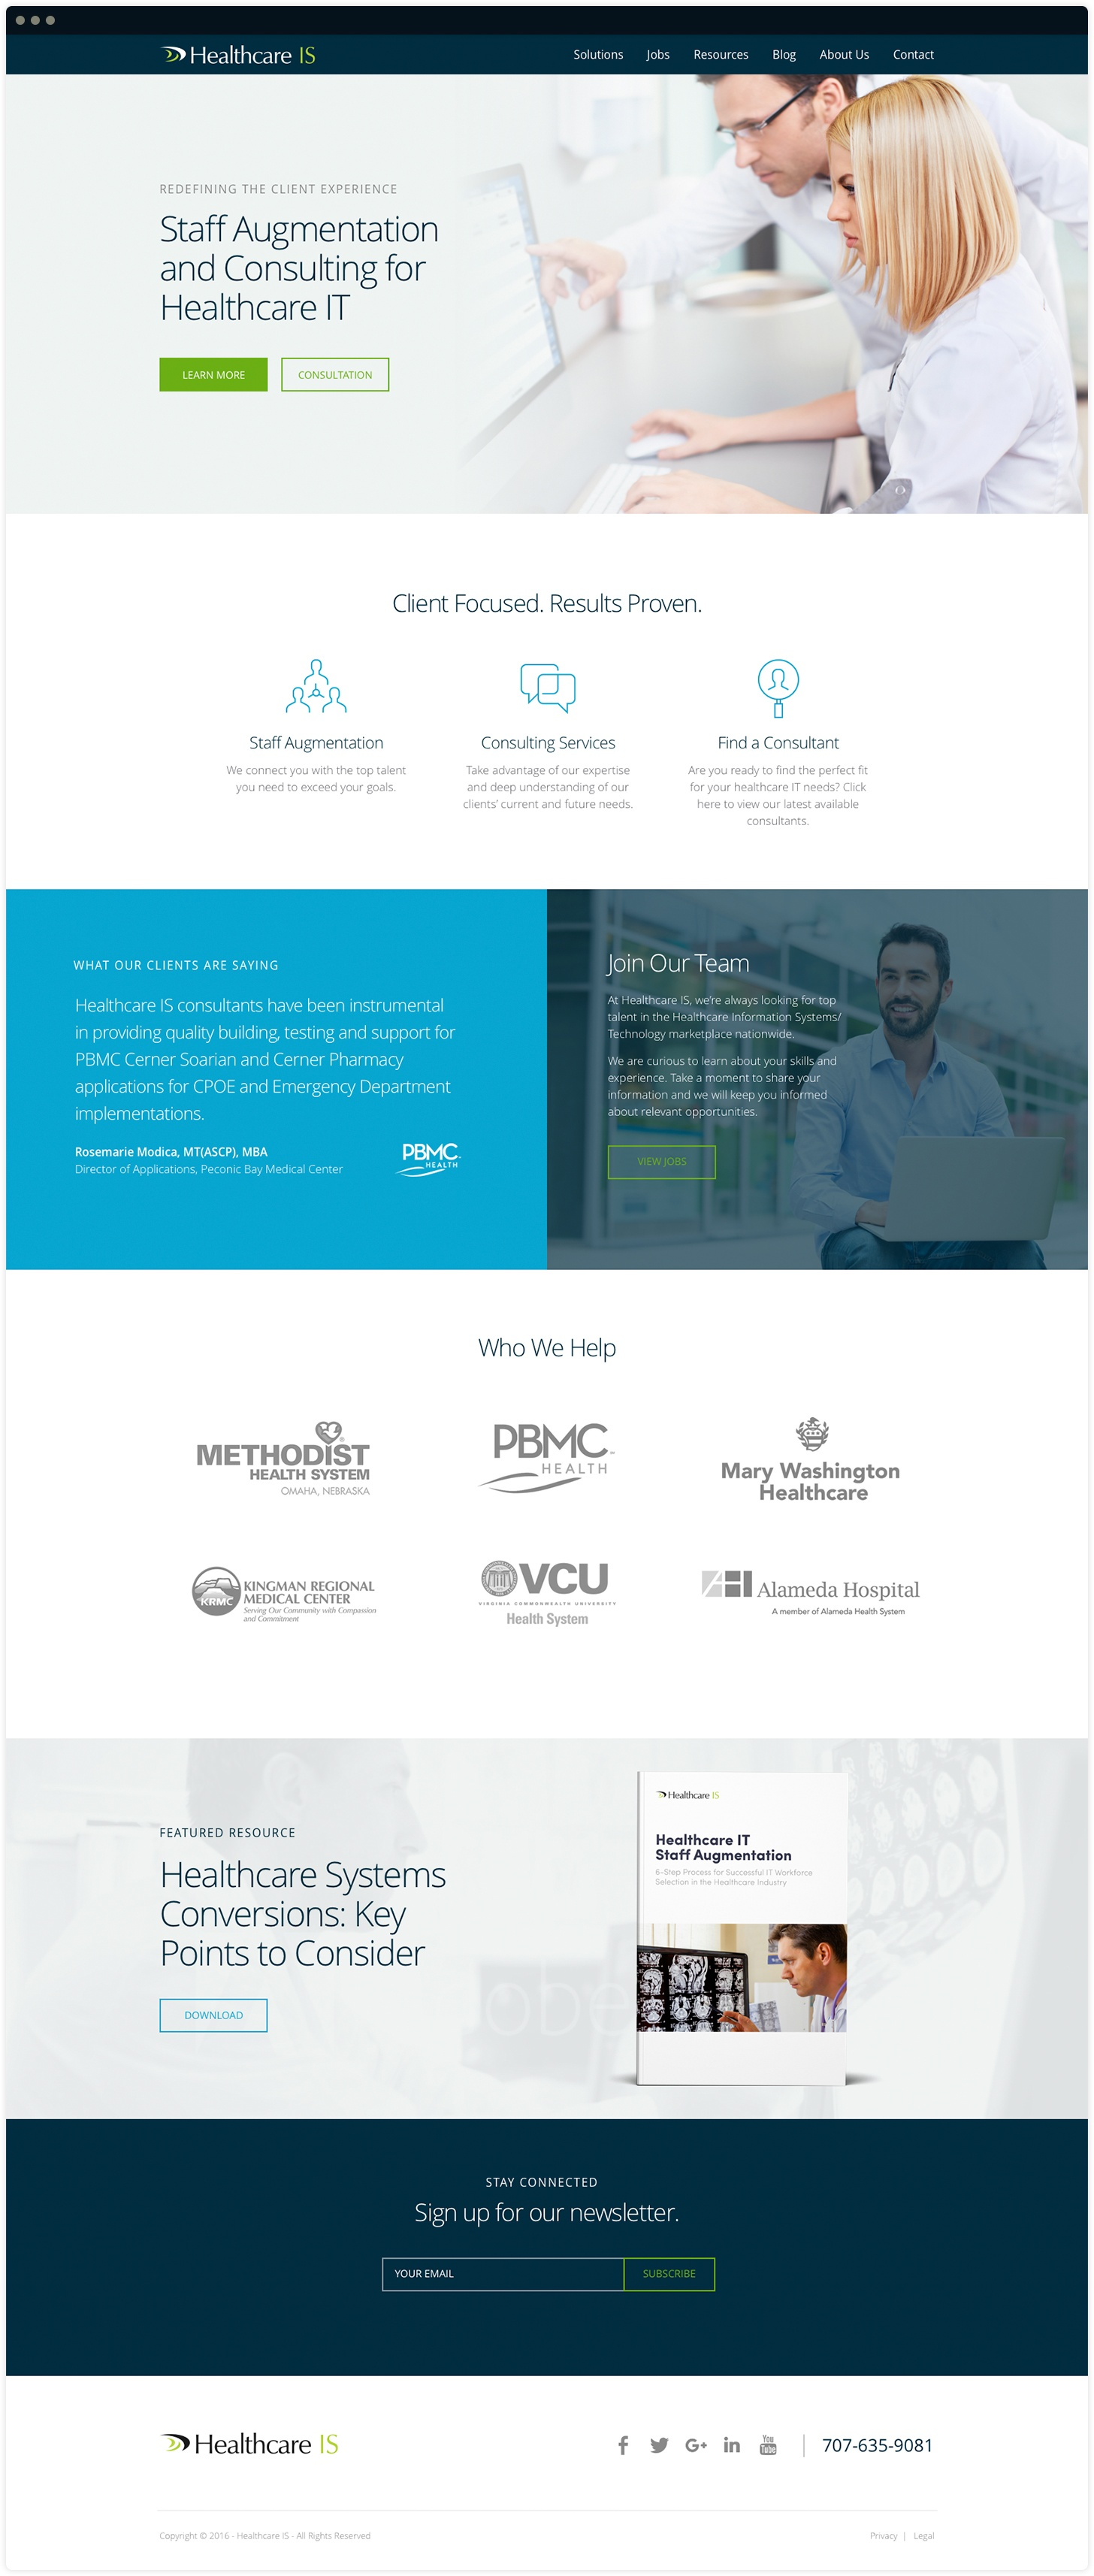 Healthcare IS Homepage Design by Salted Stone